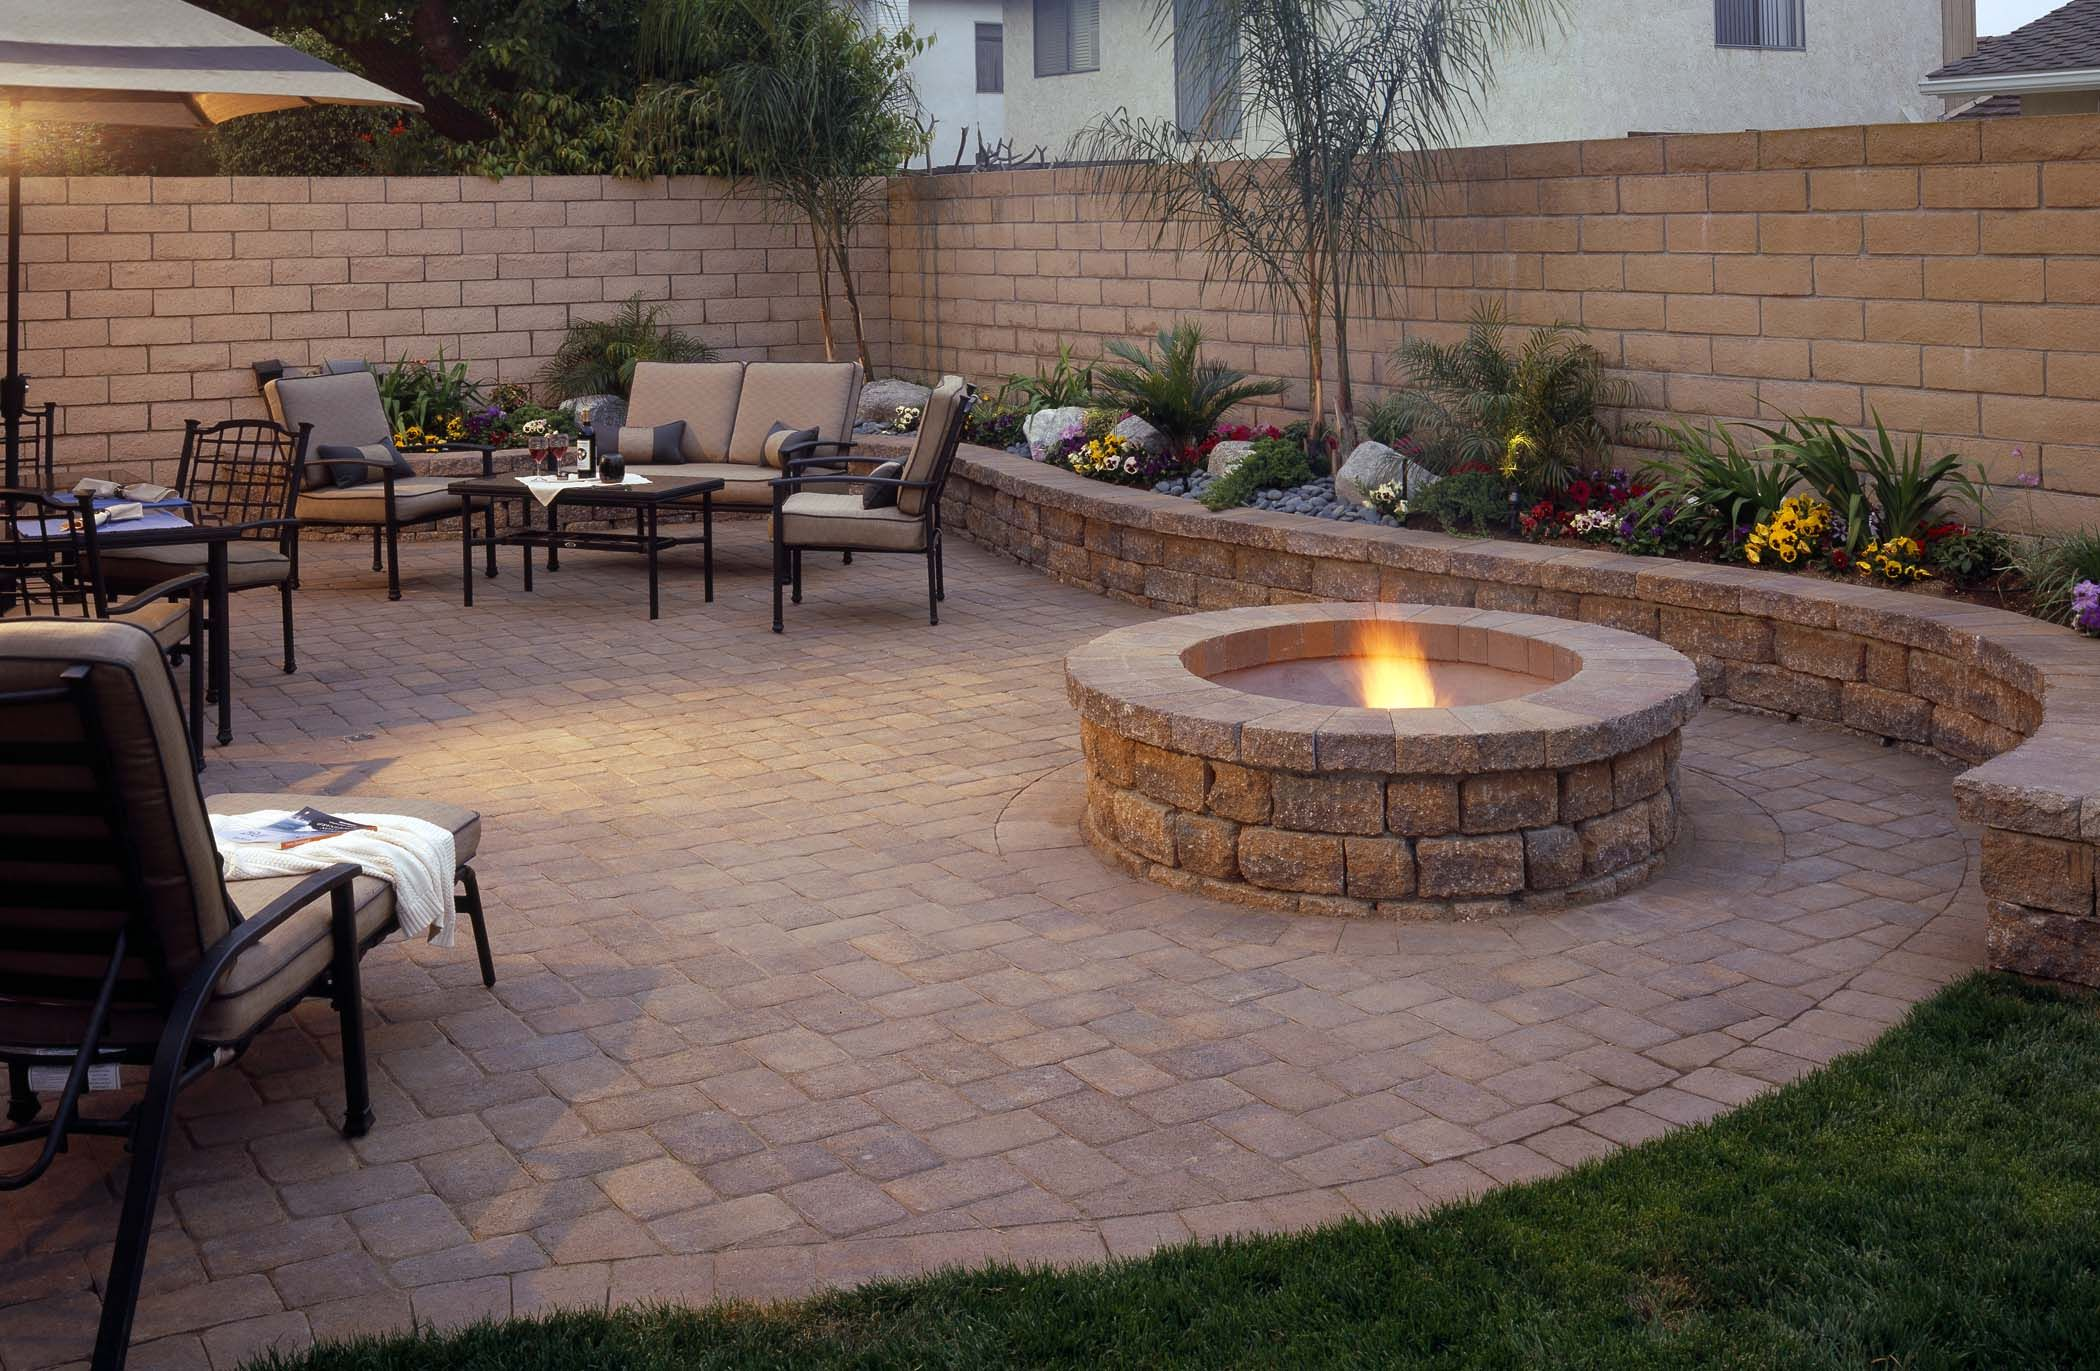 Pool Rund Pflastern Best 25 43 Backyard Pavers Ideas On Pinterest Pavers Patio